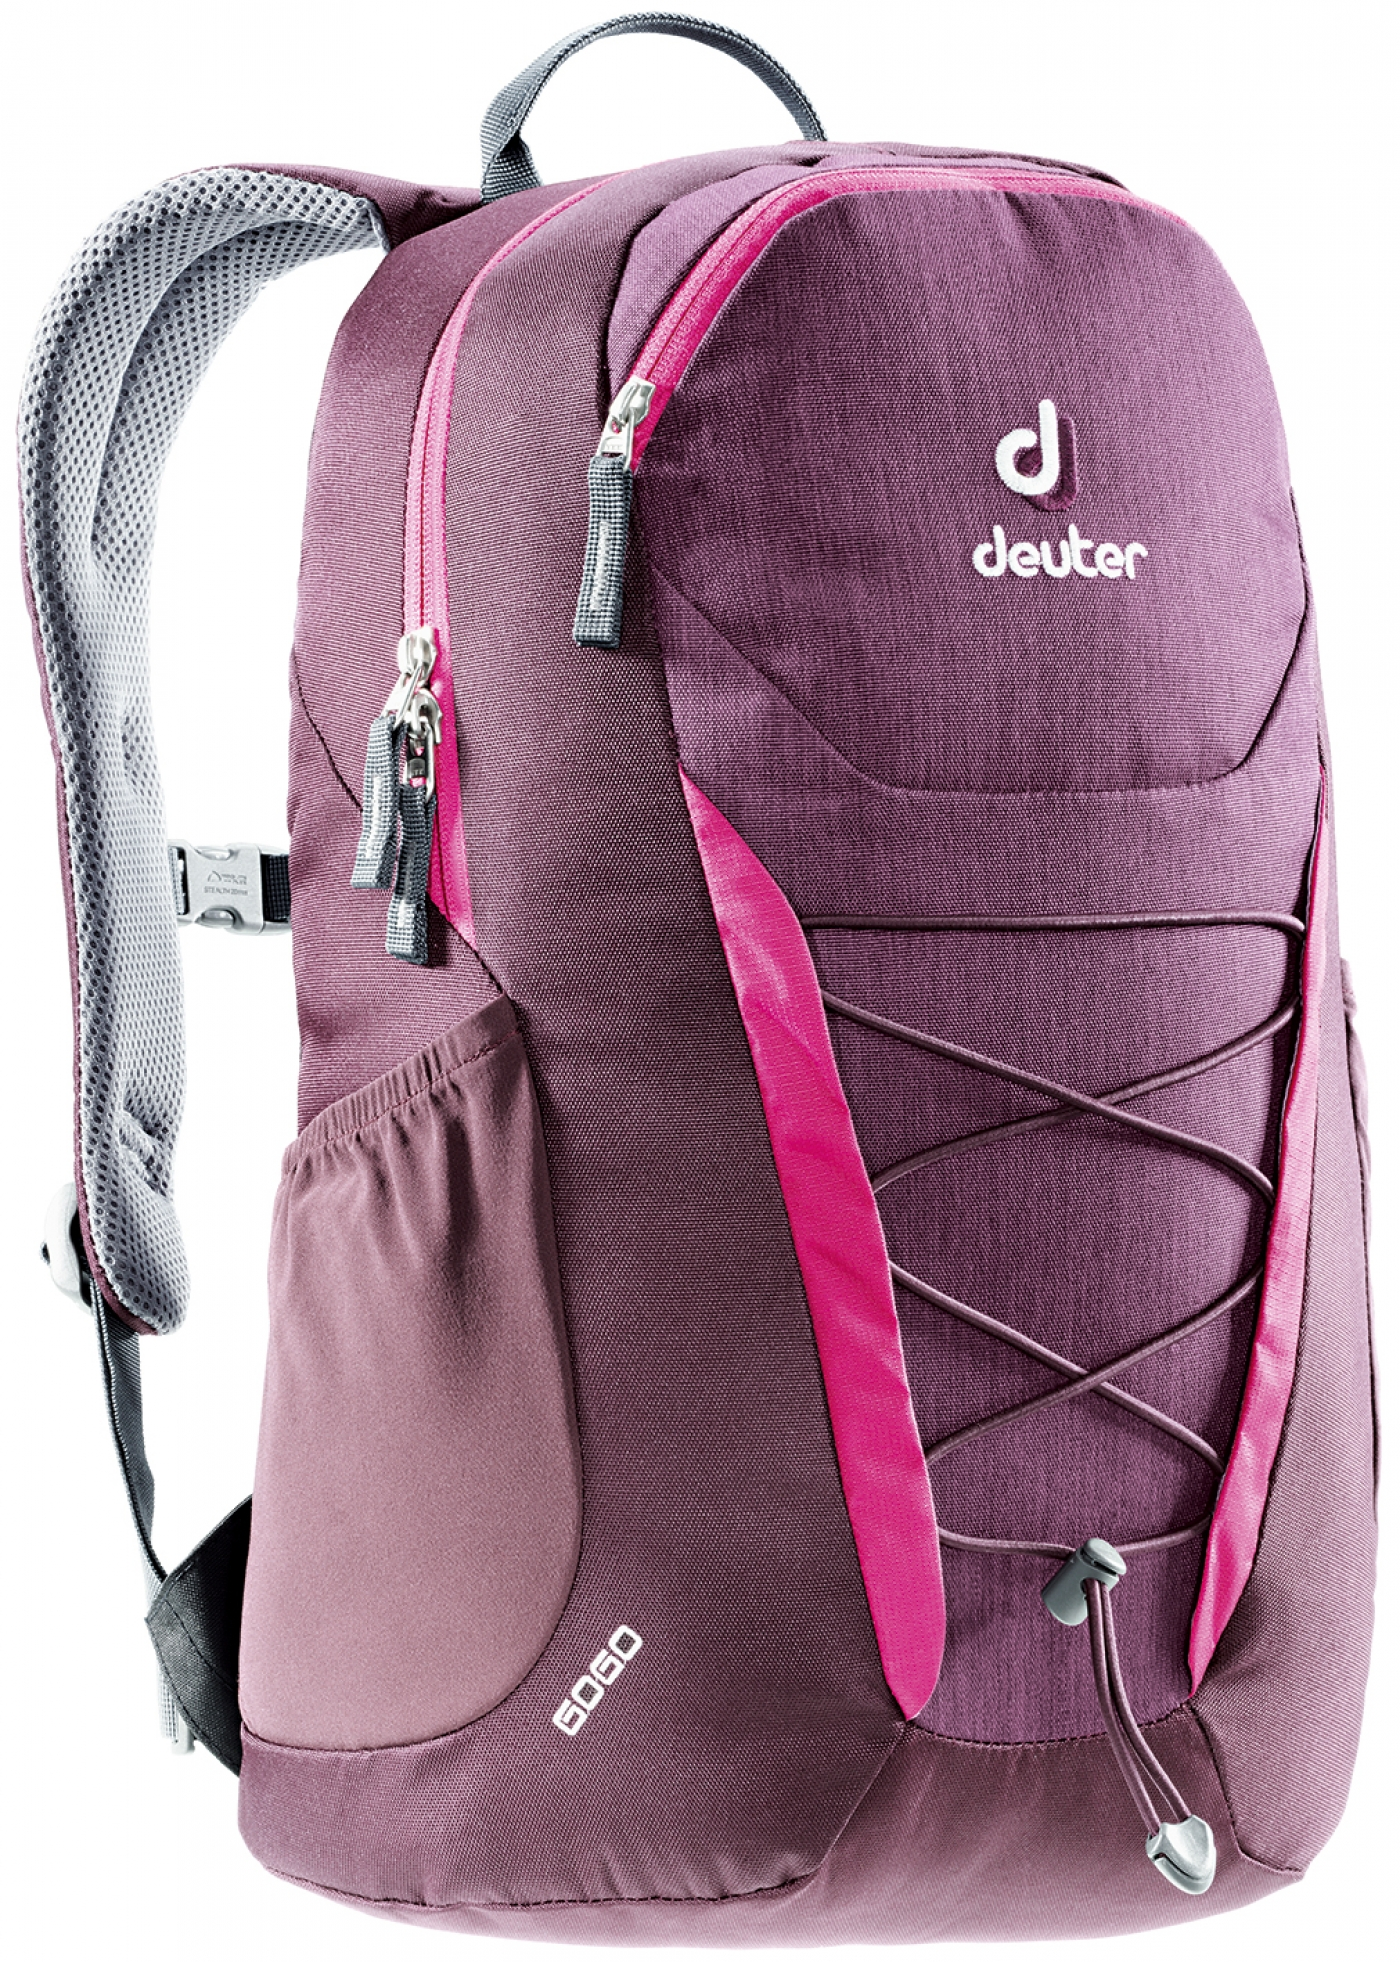 Deuter Gogo blackberry dresscode-30